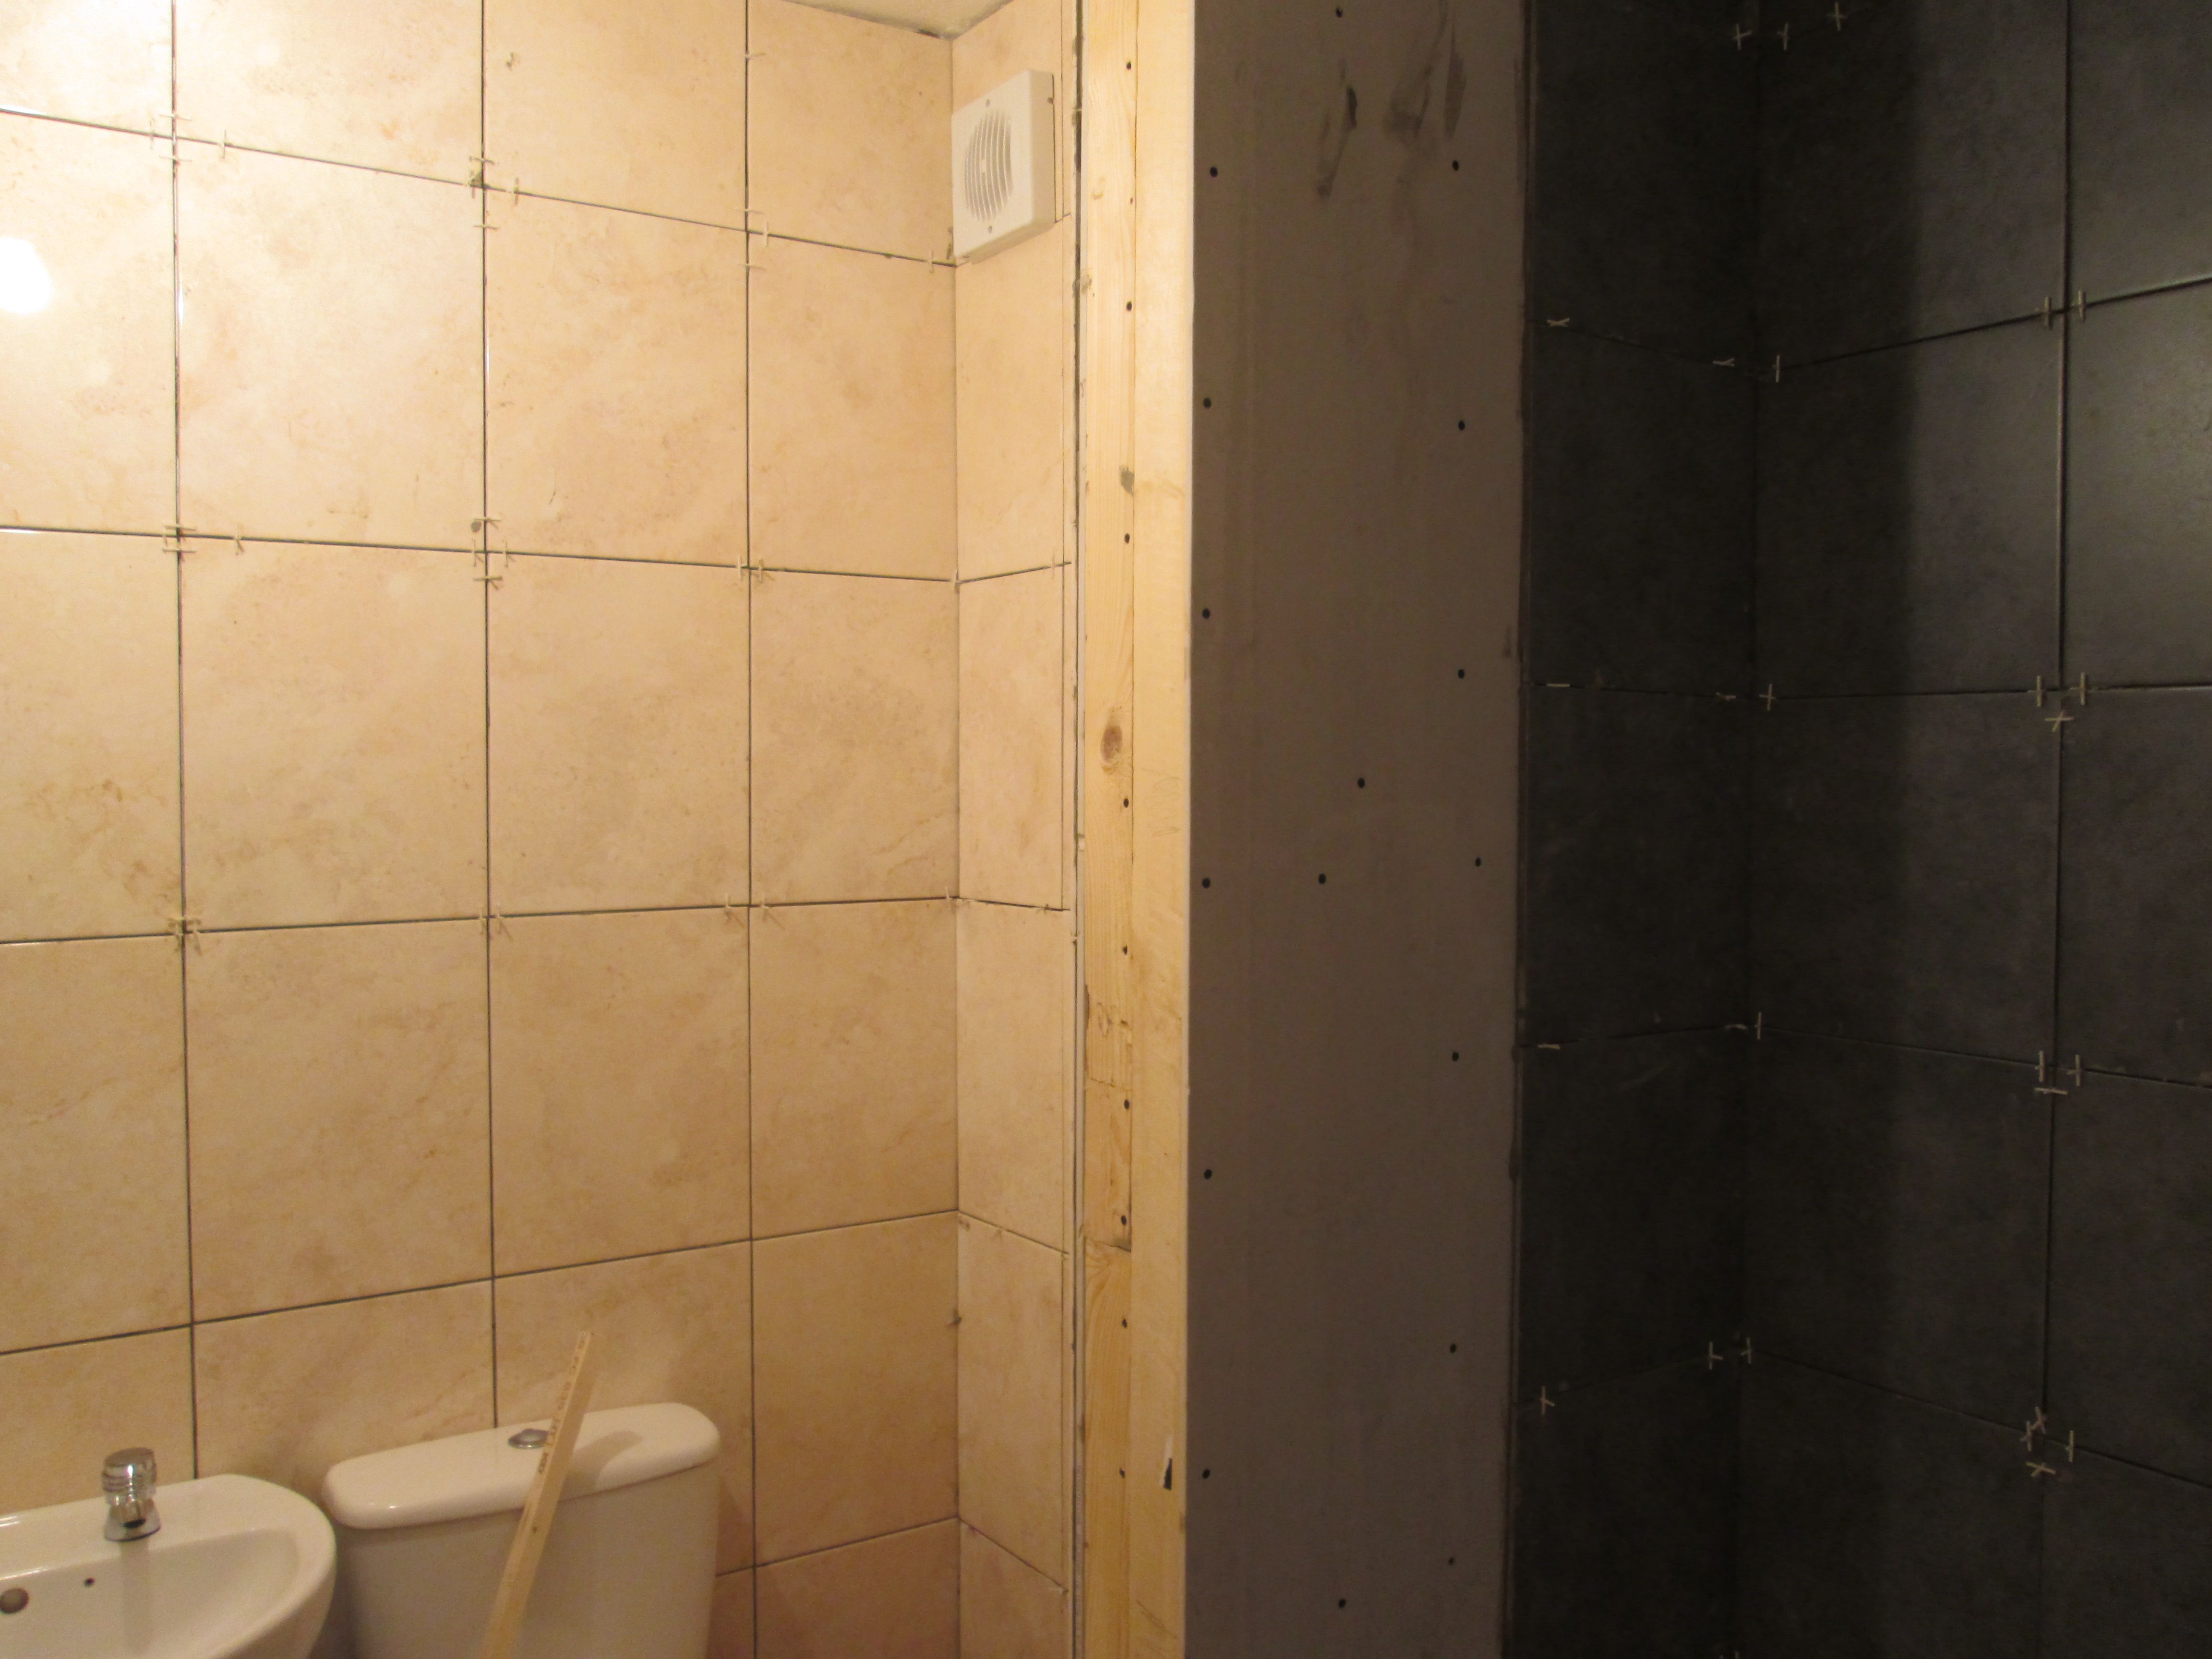 Shower cubicle to the right with main bathroom on the left.